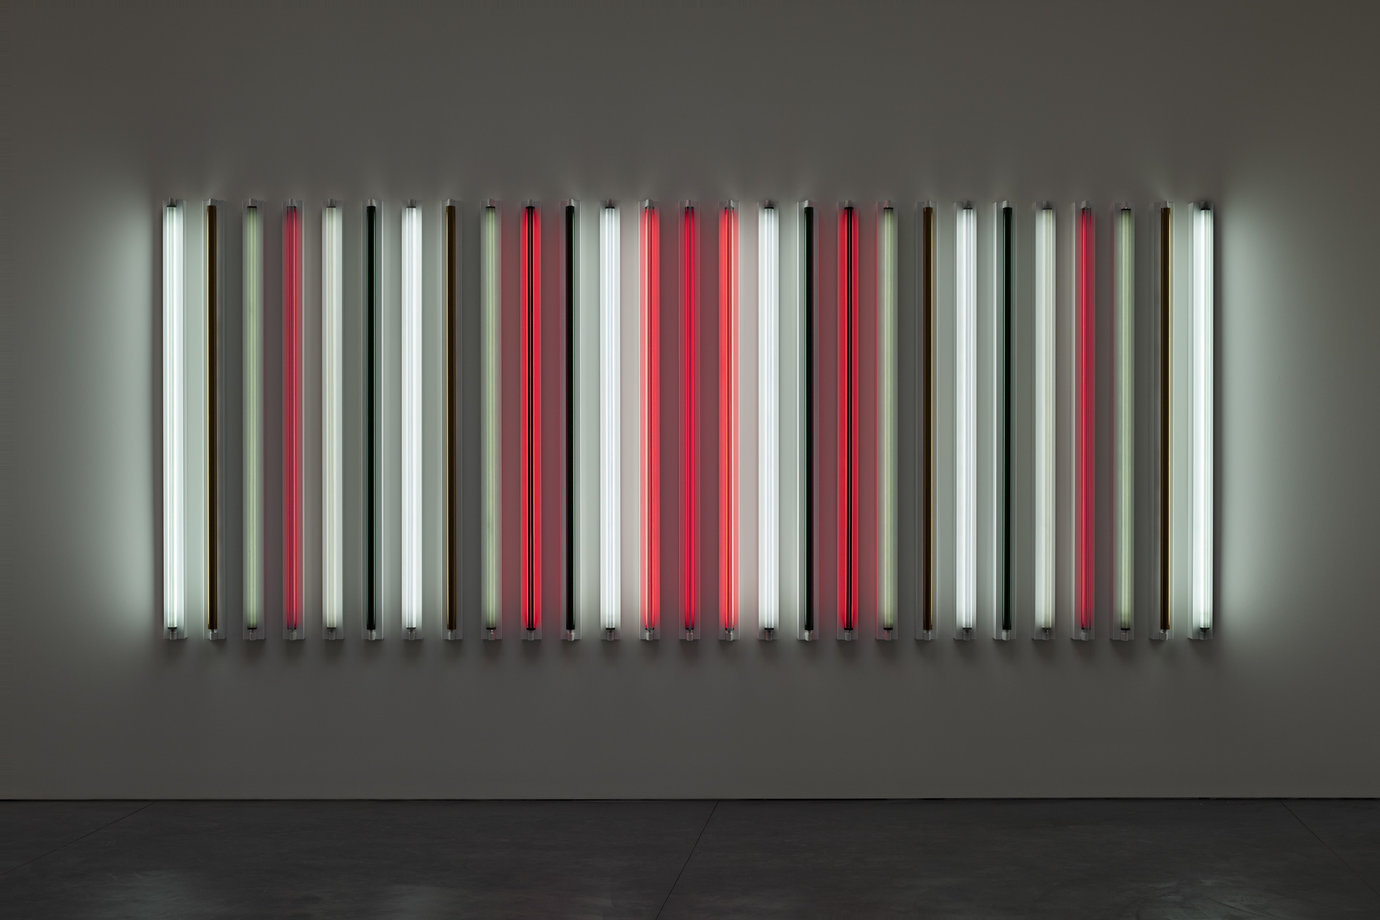 ", 2011. Light + shadow + reflection + color, 72"" x 15' x 4-5/8"" (182.9 cm x 457.2 cm x 11.7 cm)."